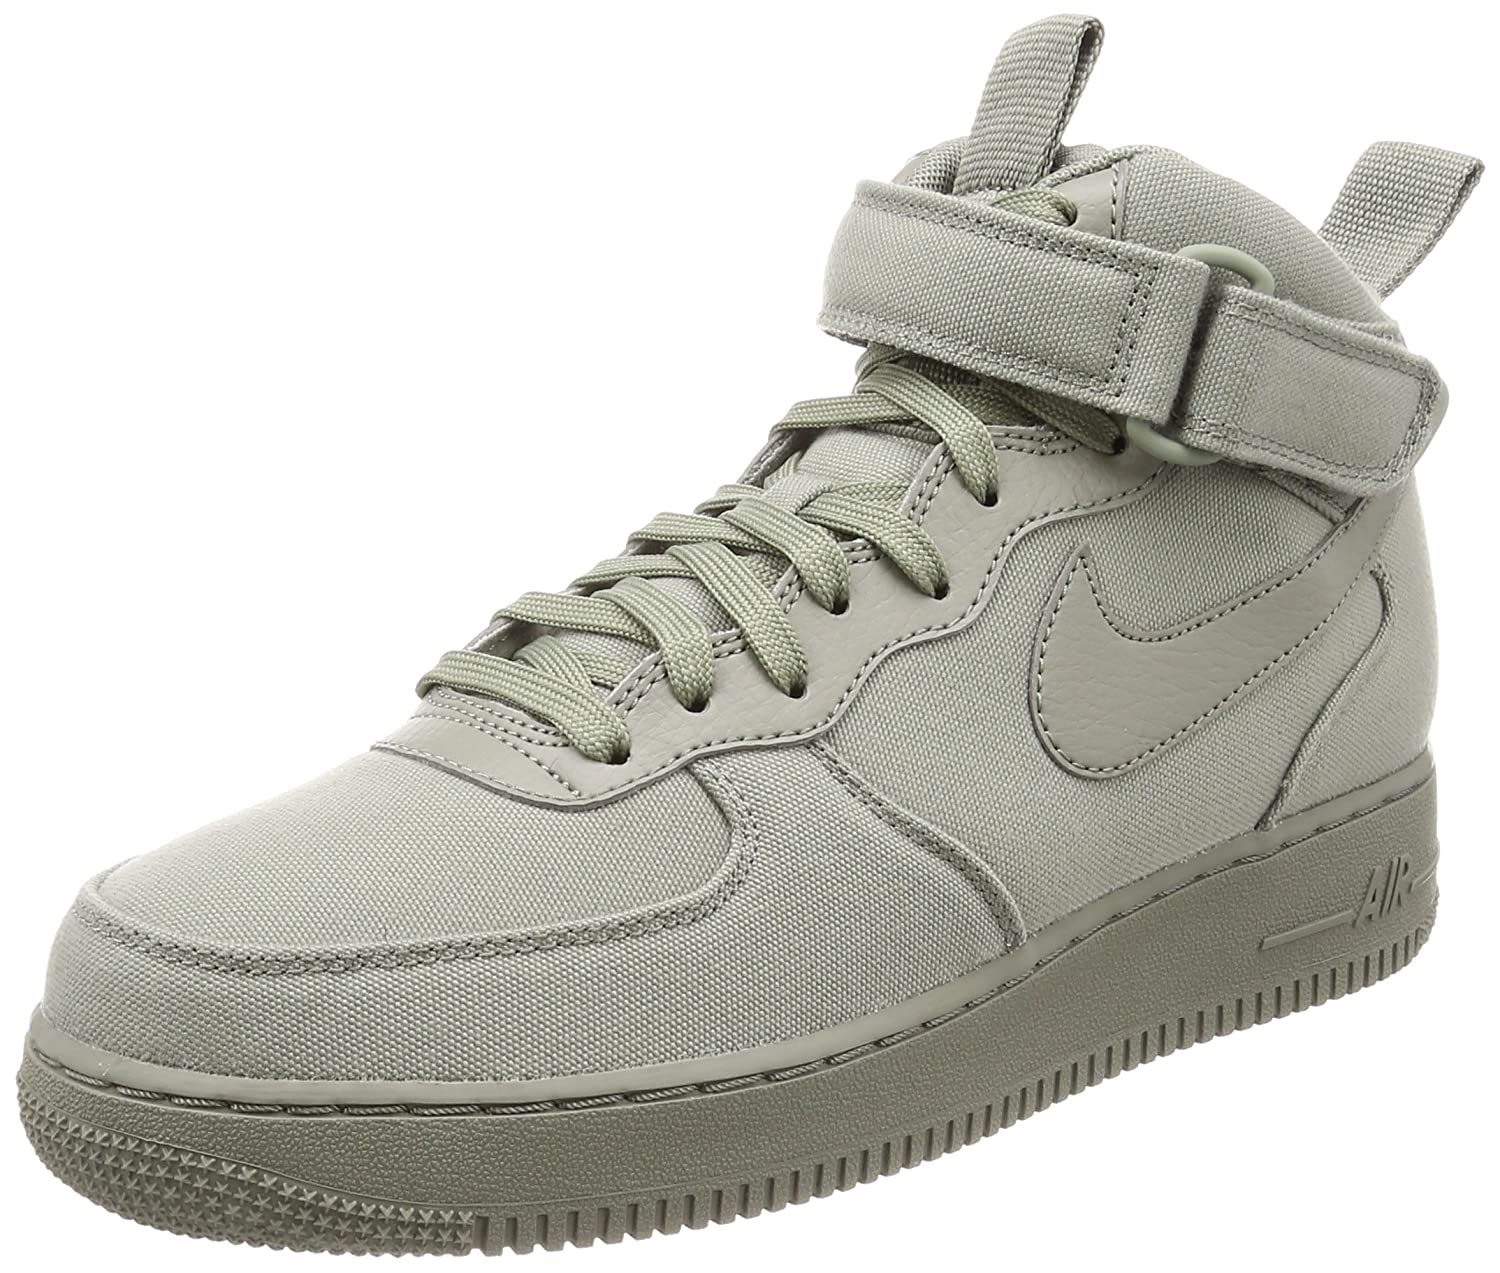 Nike Air Force 1 Mid '07 Men's B0784MT5PS 9.5 D(M) US|Dark Stucco/Dark Stucco